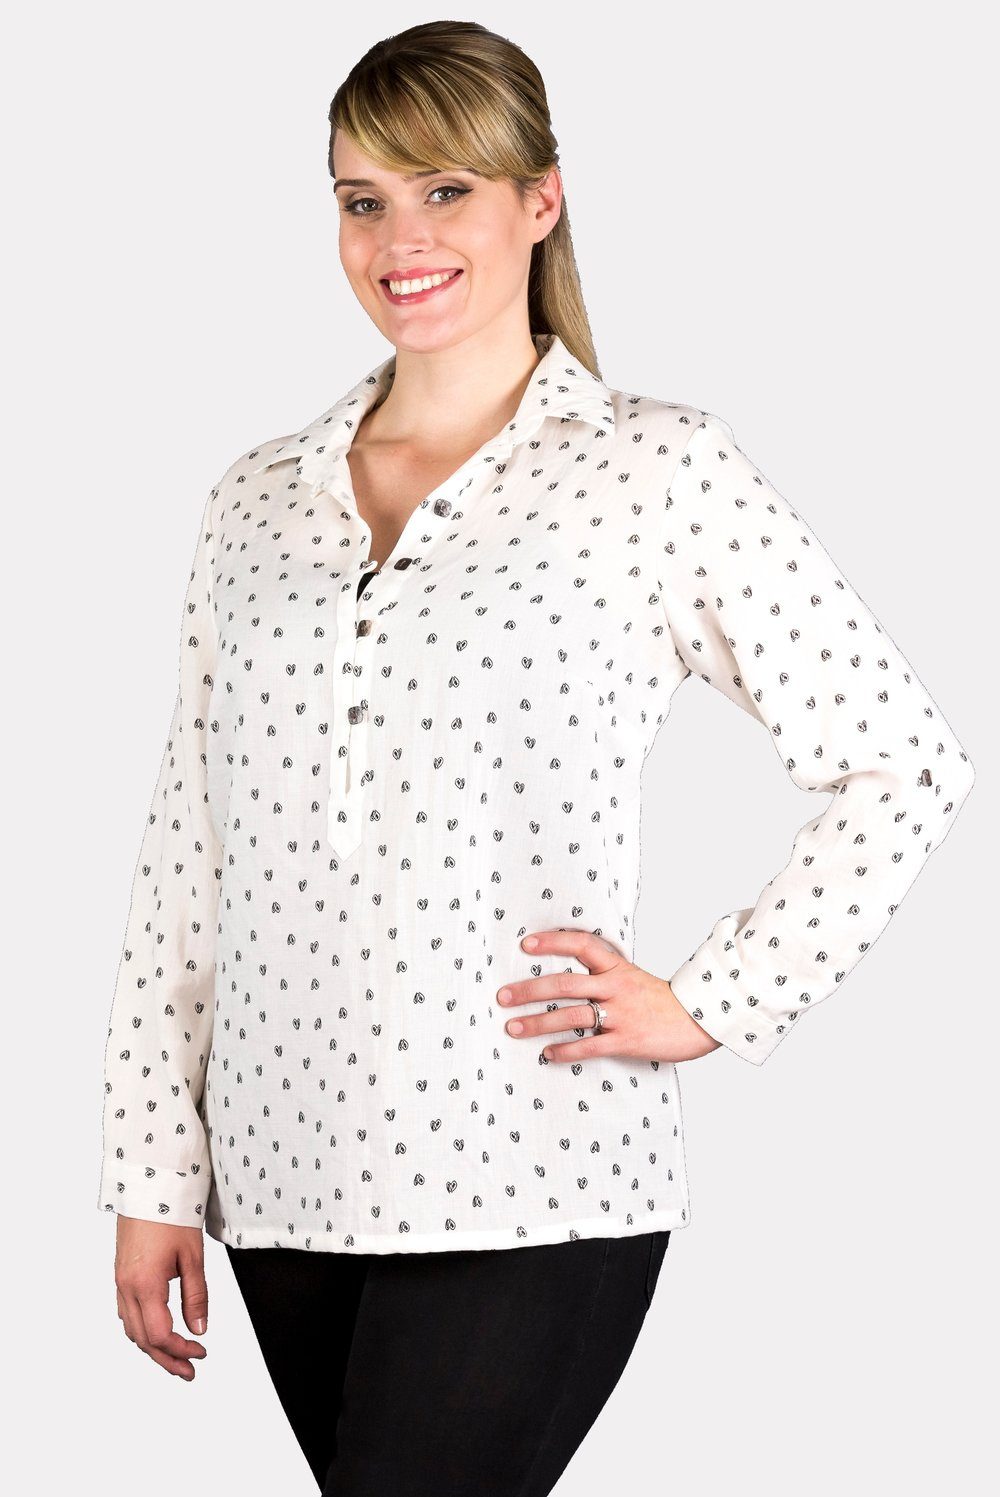 AA76 - Pullover Top w/ Square Buttons    CL387H - White w/ Hearts